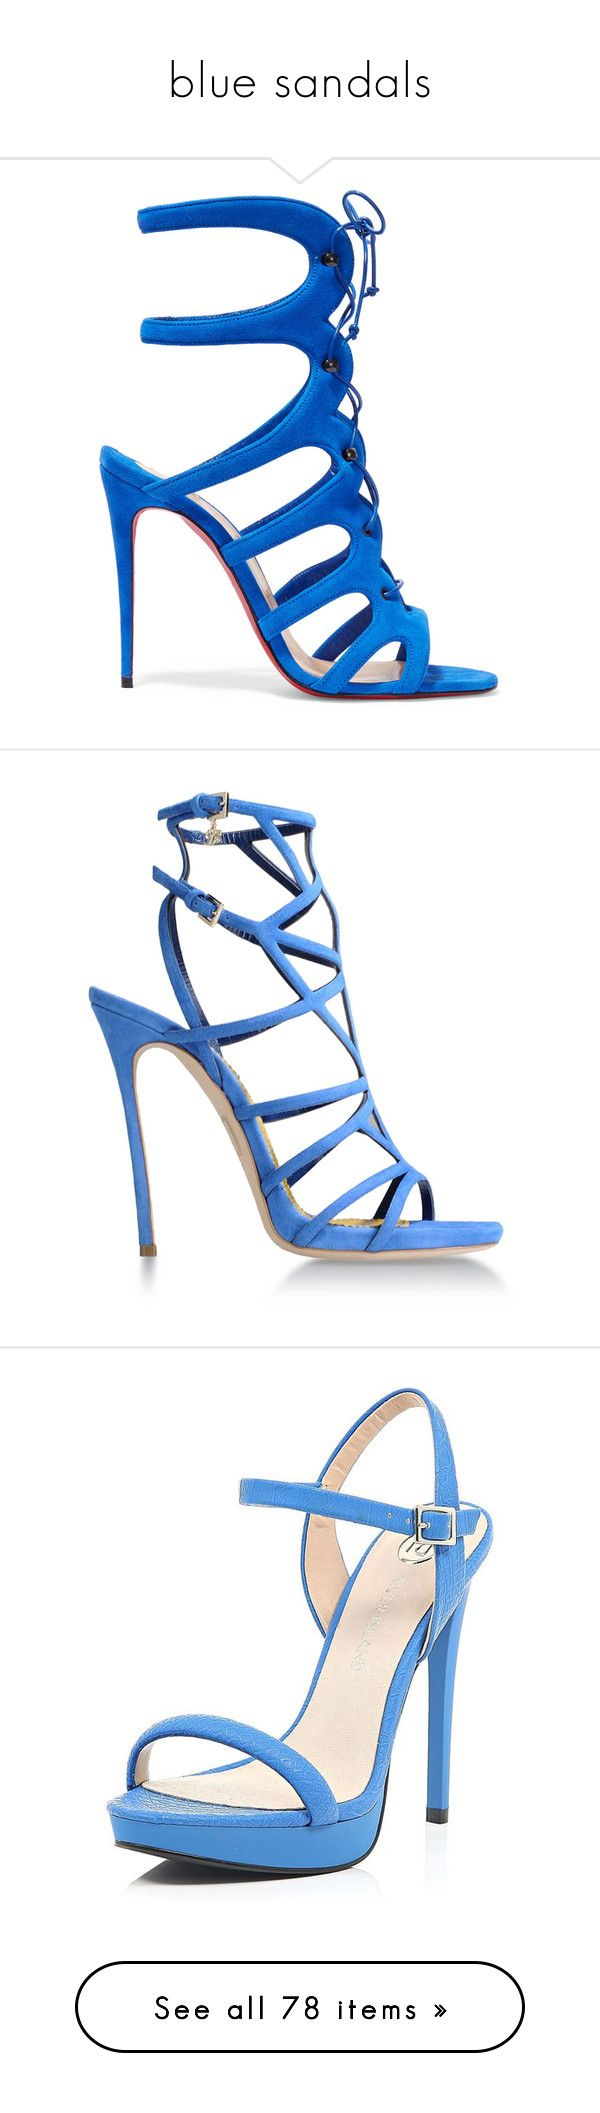 """blue sandals"" by lulucosby ❤ liked on Polyvore featuring shoes, sandals, heels, christian louboutin, blue, high heel sandals, blue heeled sandals, lace up heeled sandals, blue suede sandals and strappy lace up sandals"